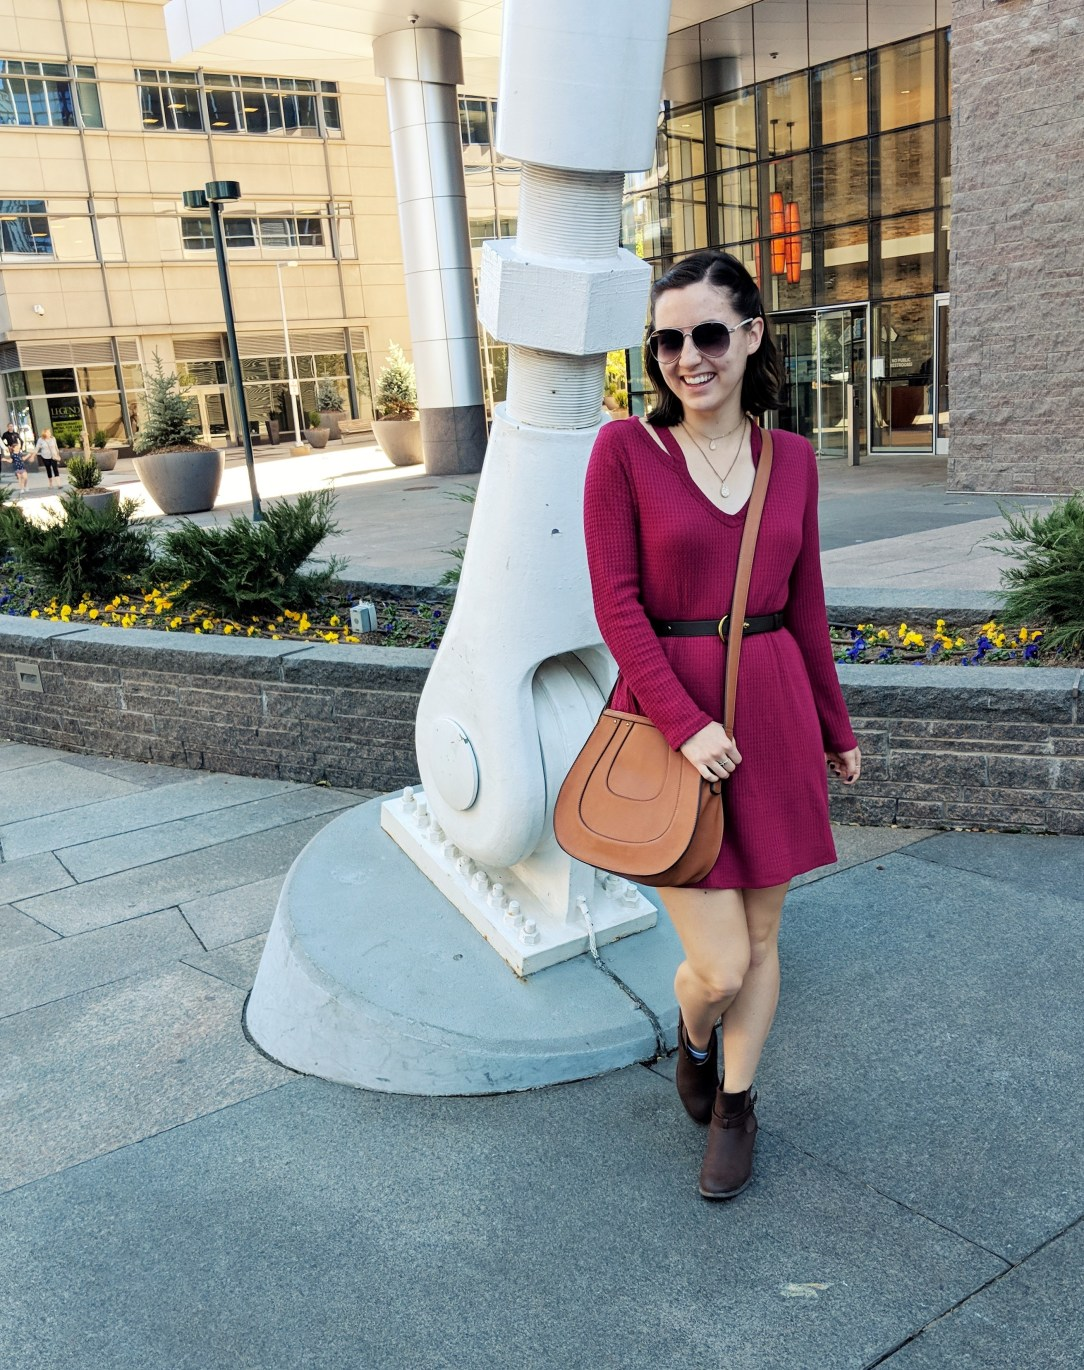 red dress and brown saddle bag